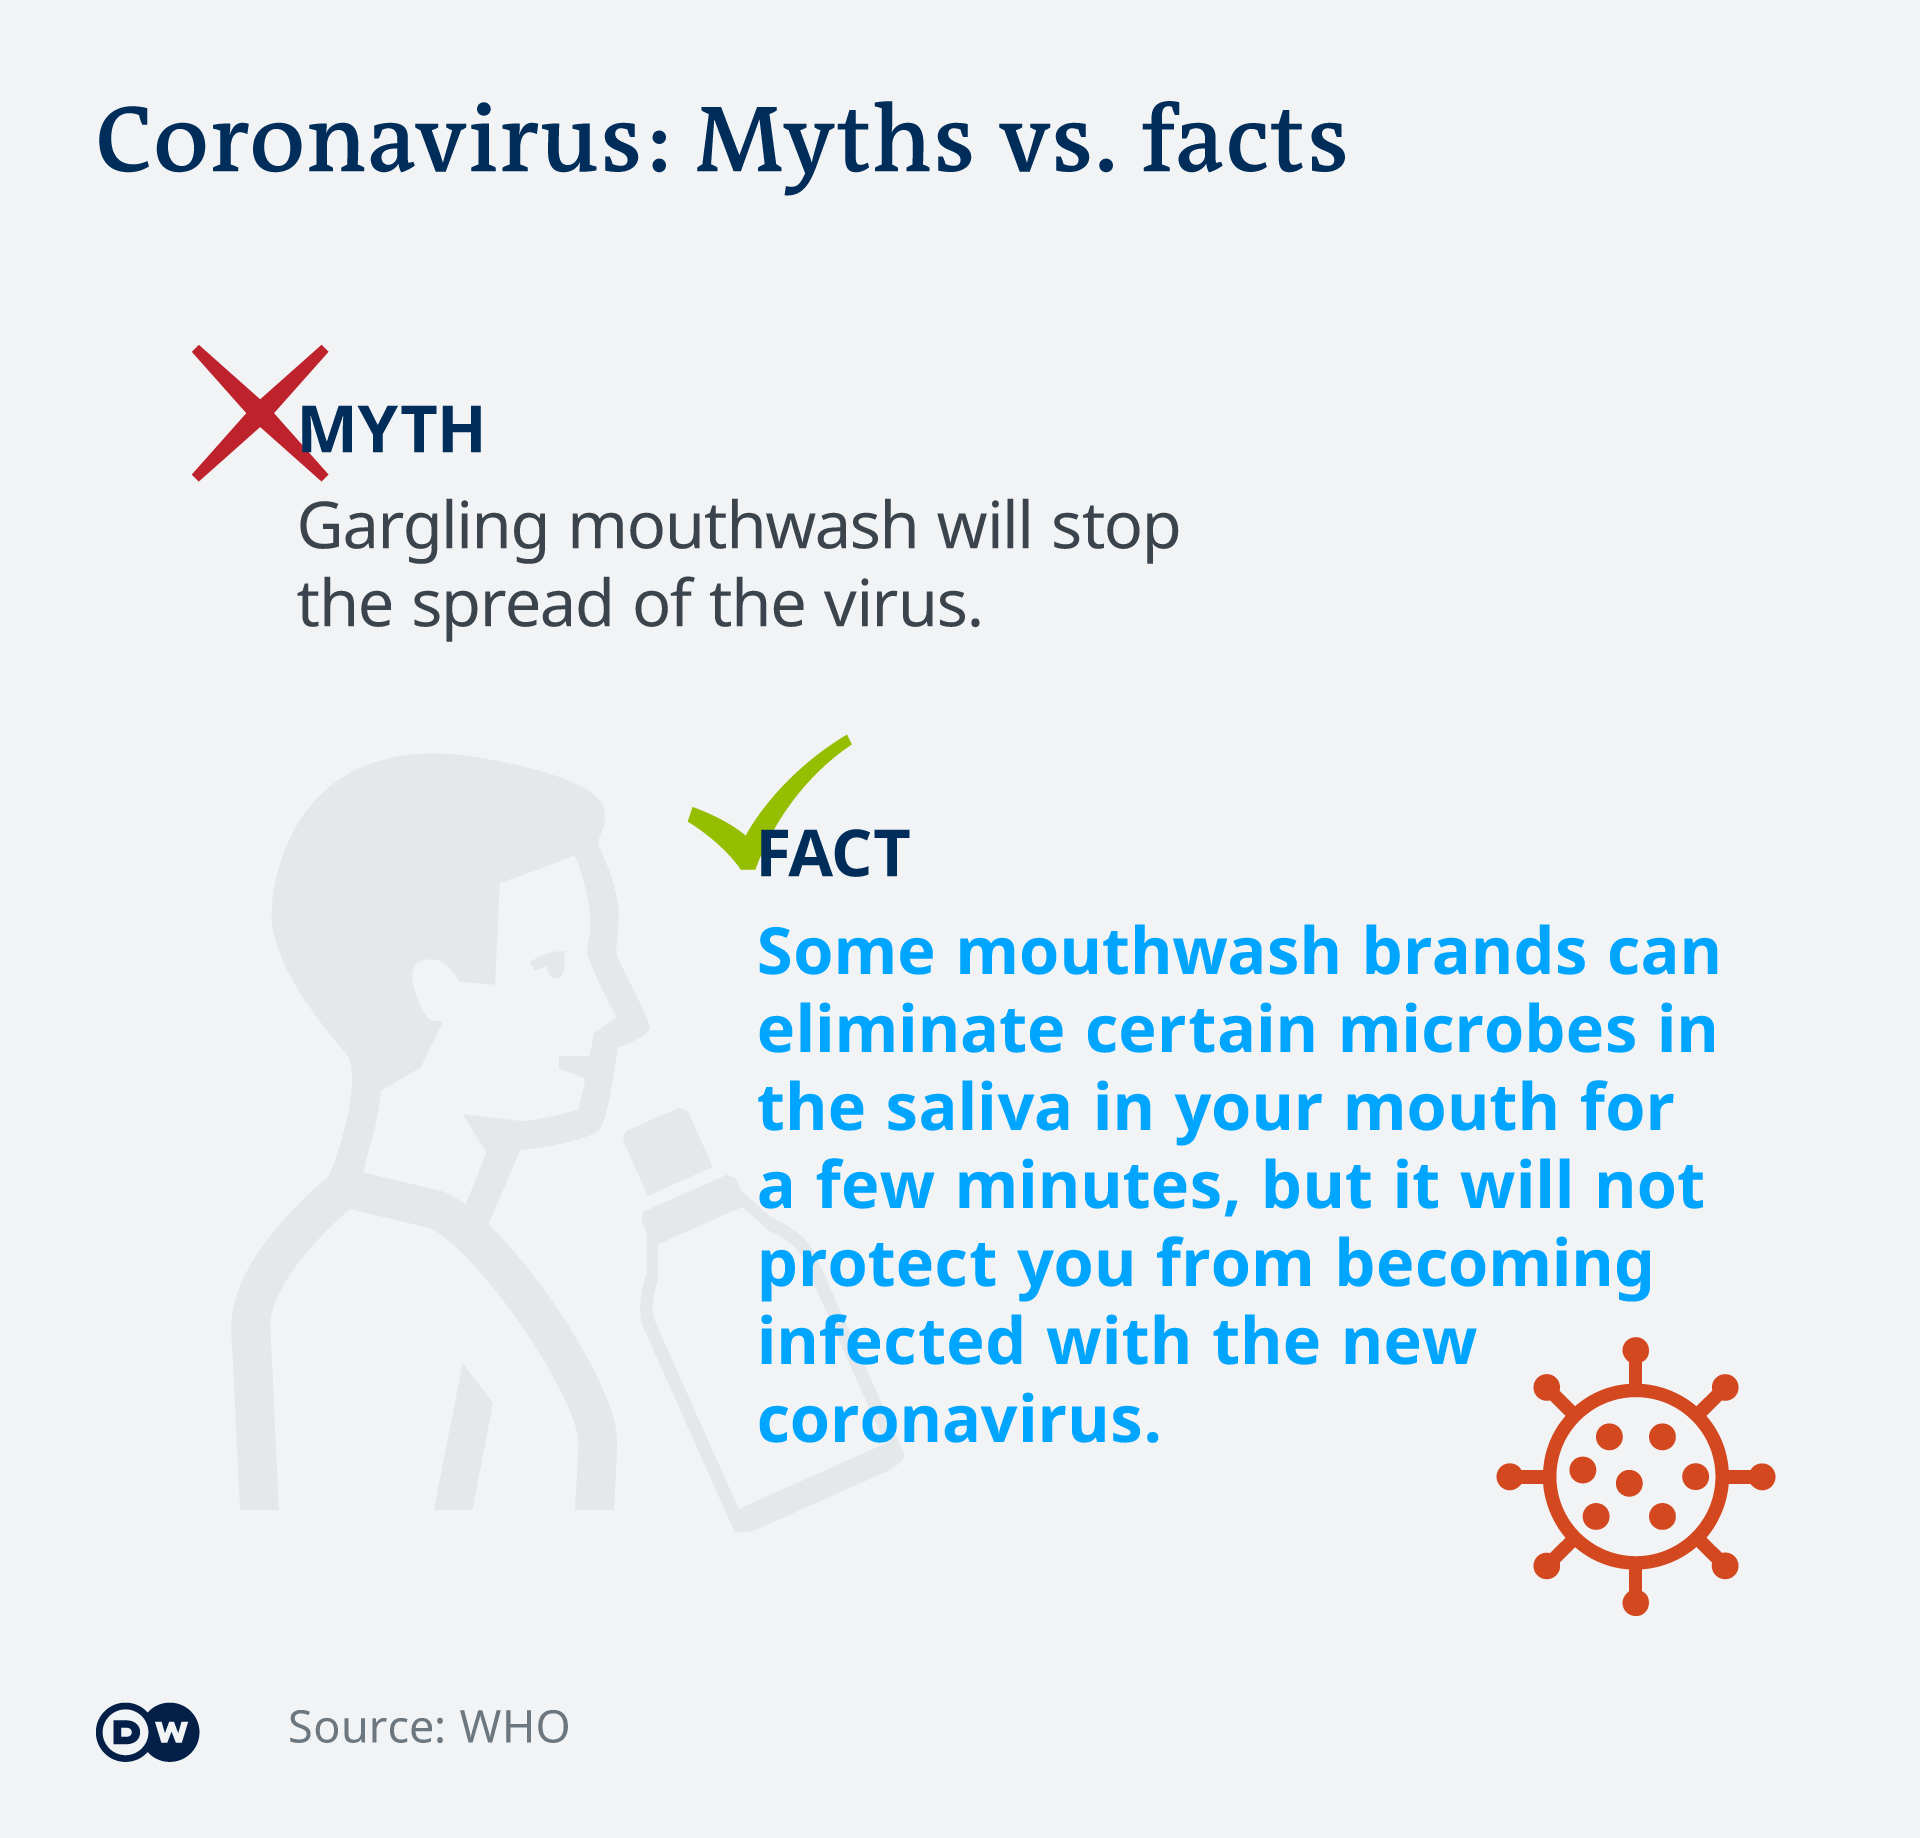 An infographic showing a myth surrounding coronavirus